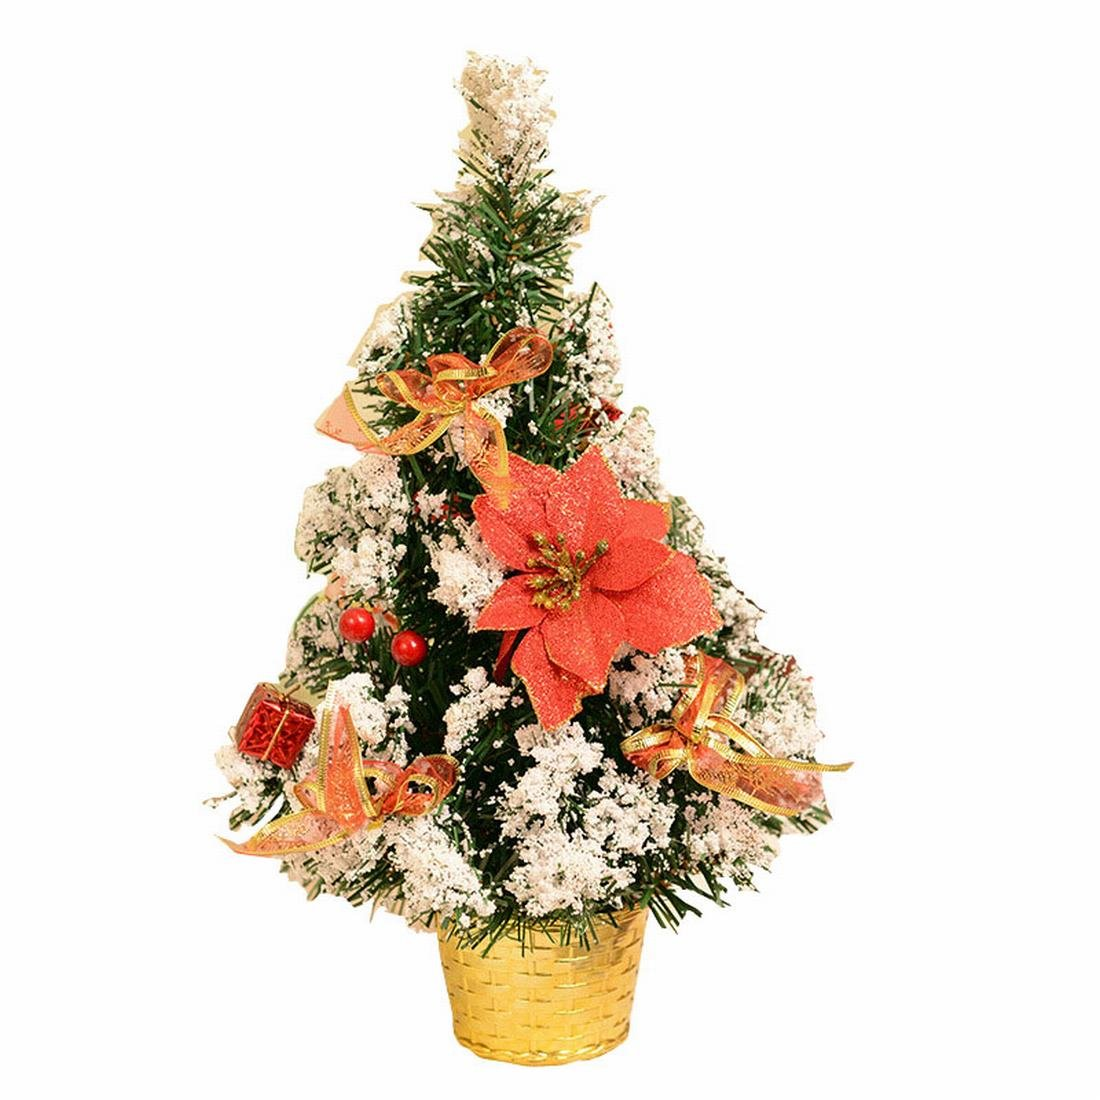 Small Artificial Christmas Tree Decorated Gife Red Berries Ornaments - 16'' Tall Tabletop (Red) (Red)